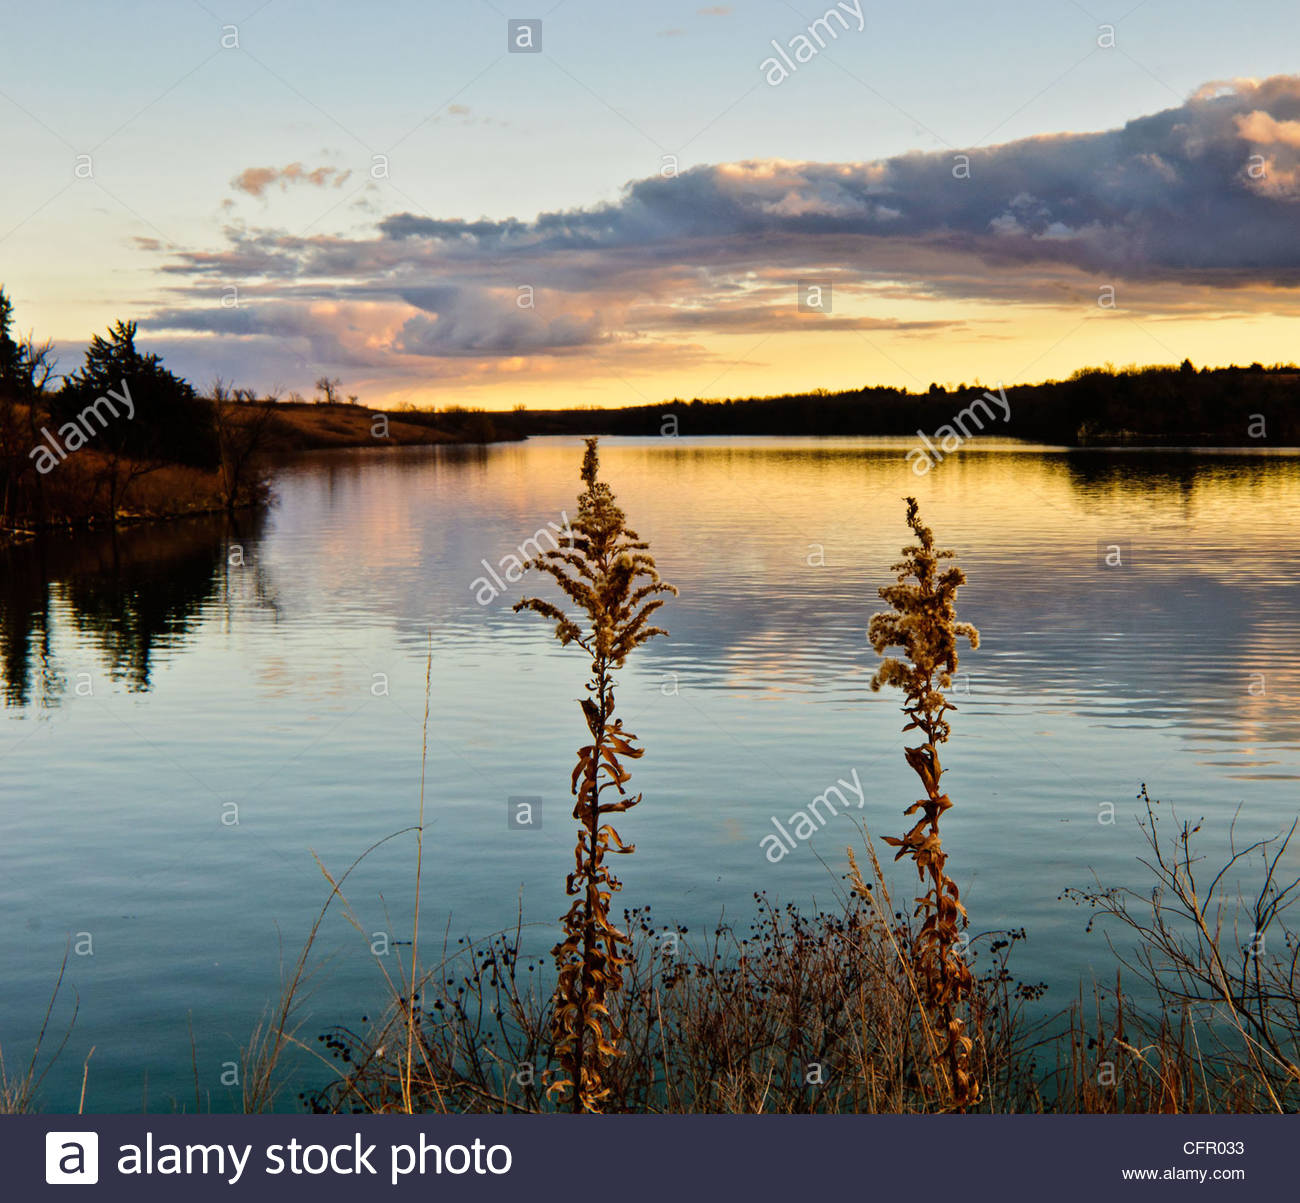 Geary State Lake at Sunset, Geary County, KS, Nov 13, 2010 - Stock Image